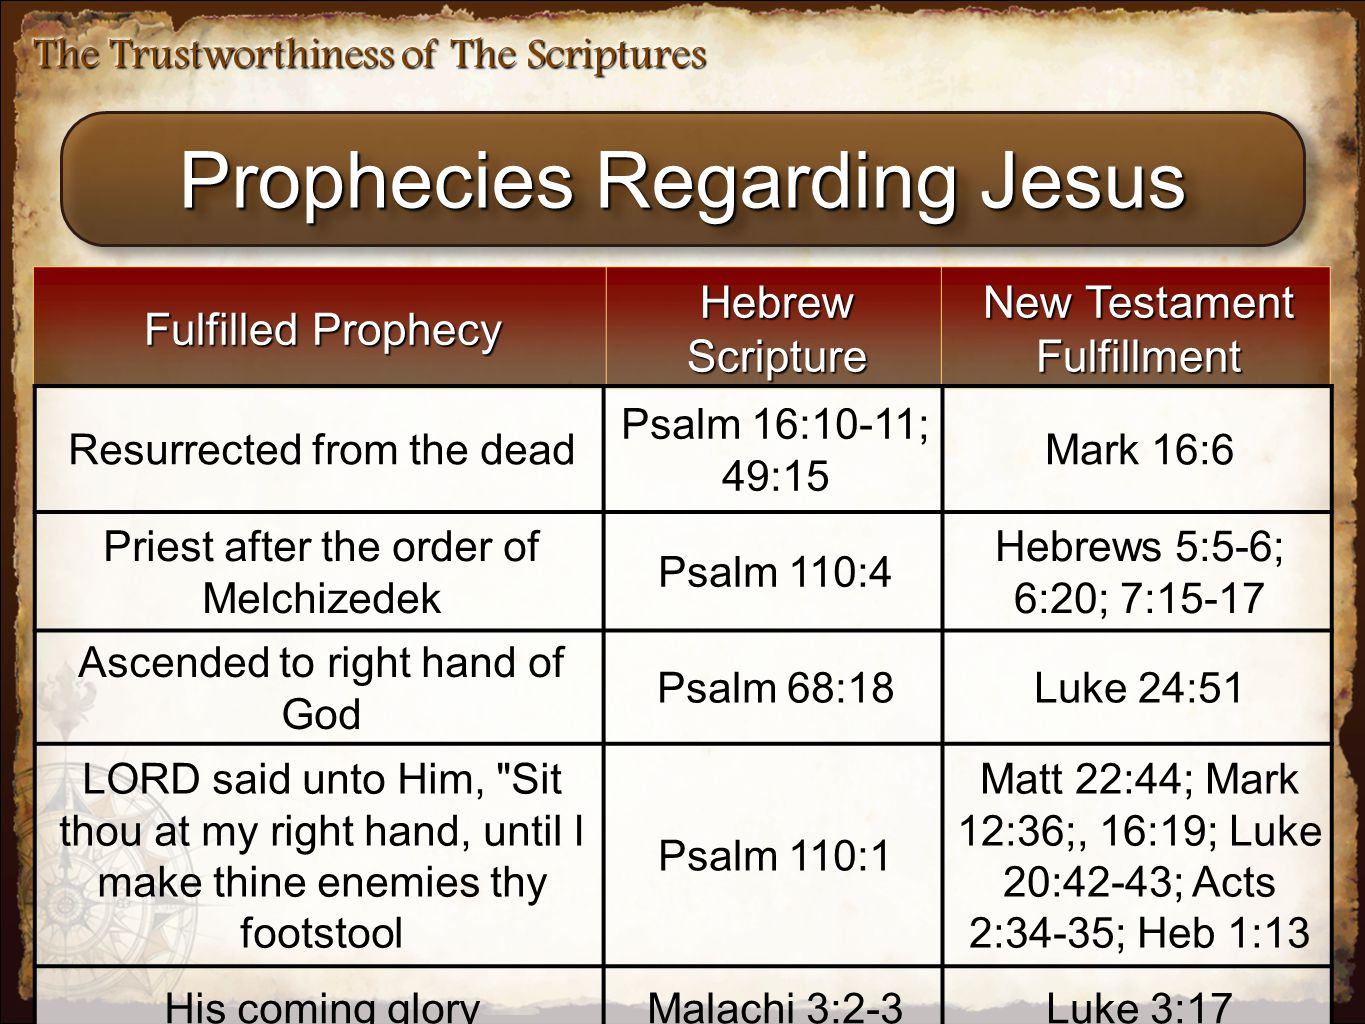 The Trustworthiness of The Scriptures Prophecies Regarding Jesus Fulfilled Prophecy Hebrew Scripture New Testament Fulfillment Resurrected from the dead Psalm 16:10-11; 49:15 Mark 16:6 Priest after the order of Melchizedek Psalm 110:4 Hebrews 5:5-6; 6:20; 7:15-17 Ascended to right hand of God Psalm 68:18Luke 24:51 LORD said unto Him, Sit thou at my right hand, until I make thine enemies thy footstool Psalm 110:1 Matt 22:44; Mark 12:36;, 16:19; Luke 20:42-43; Acts 2:34-35; Heb 1:13 His coming gloryMalachi 3:2-3Luke 3:17